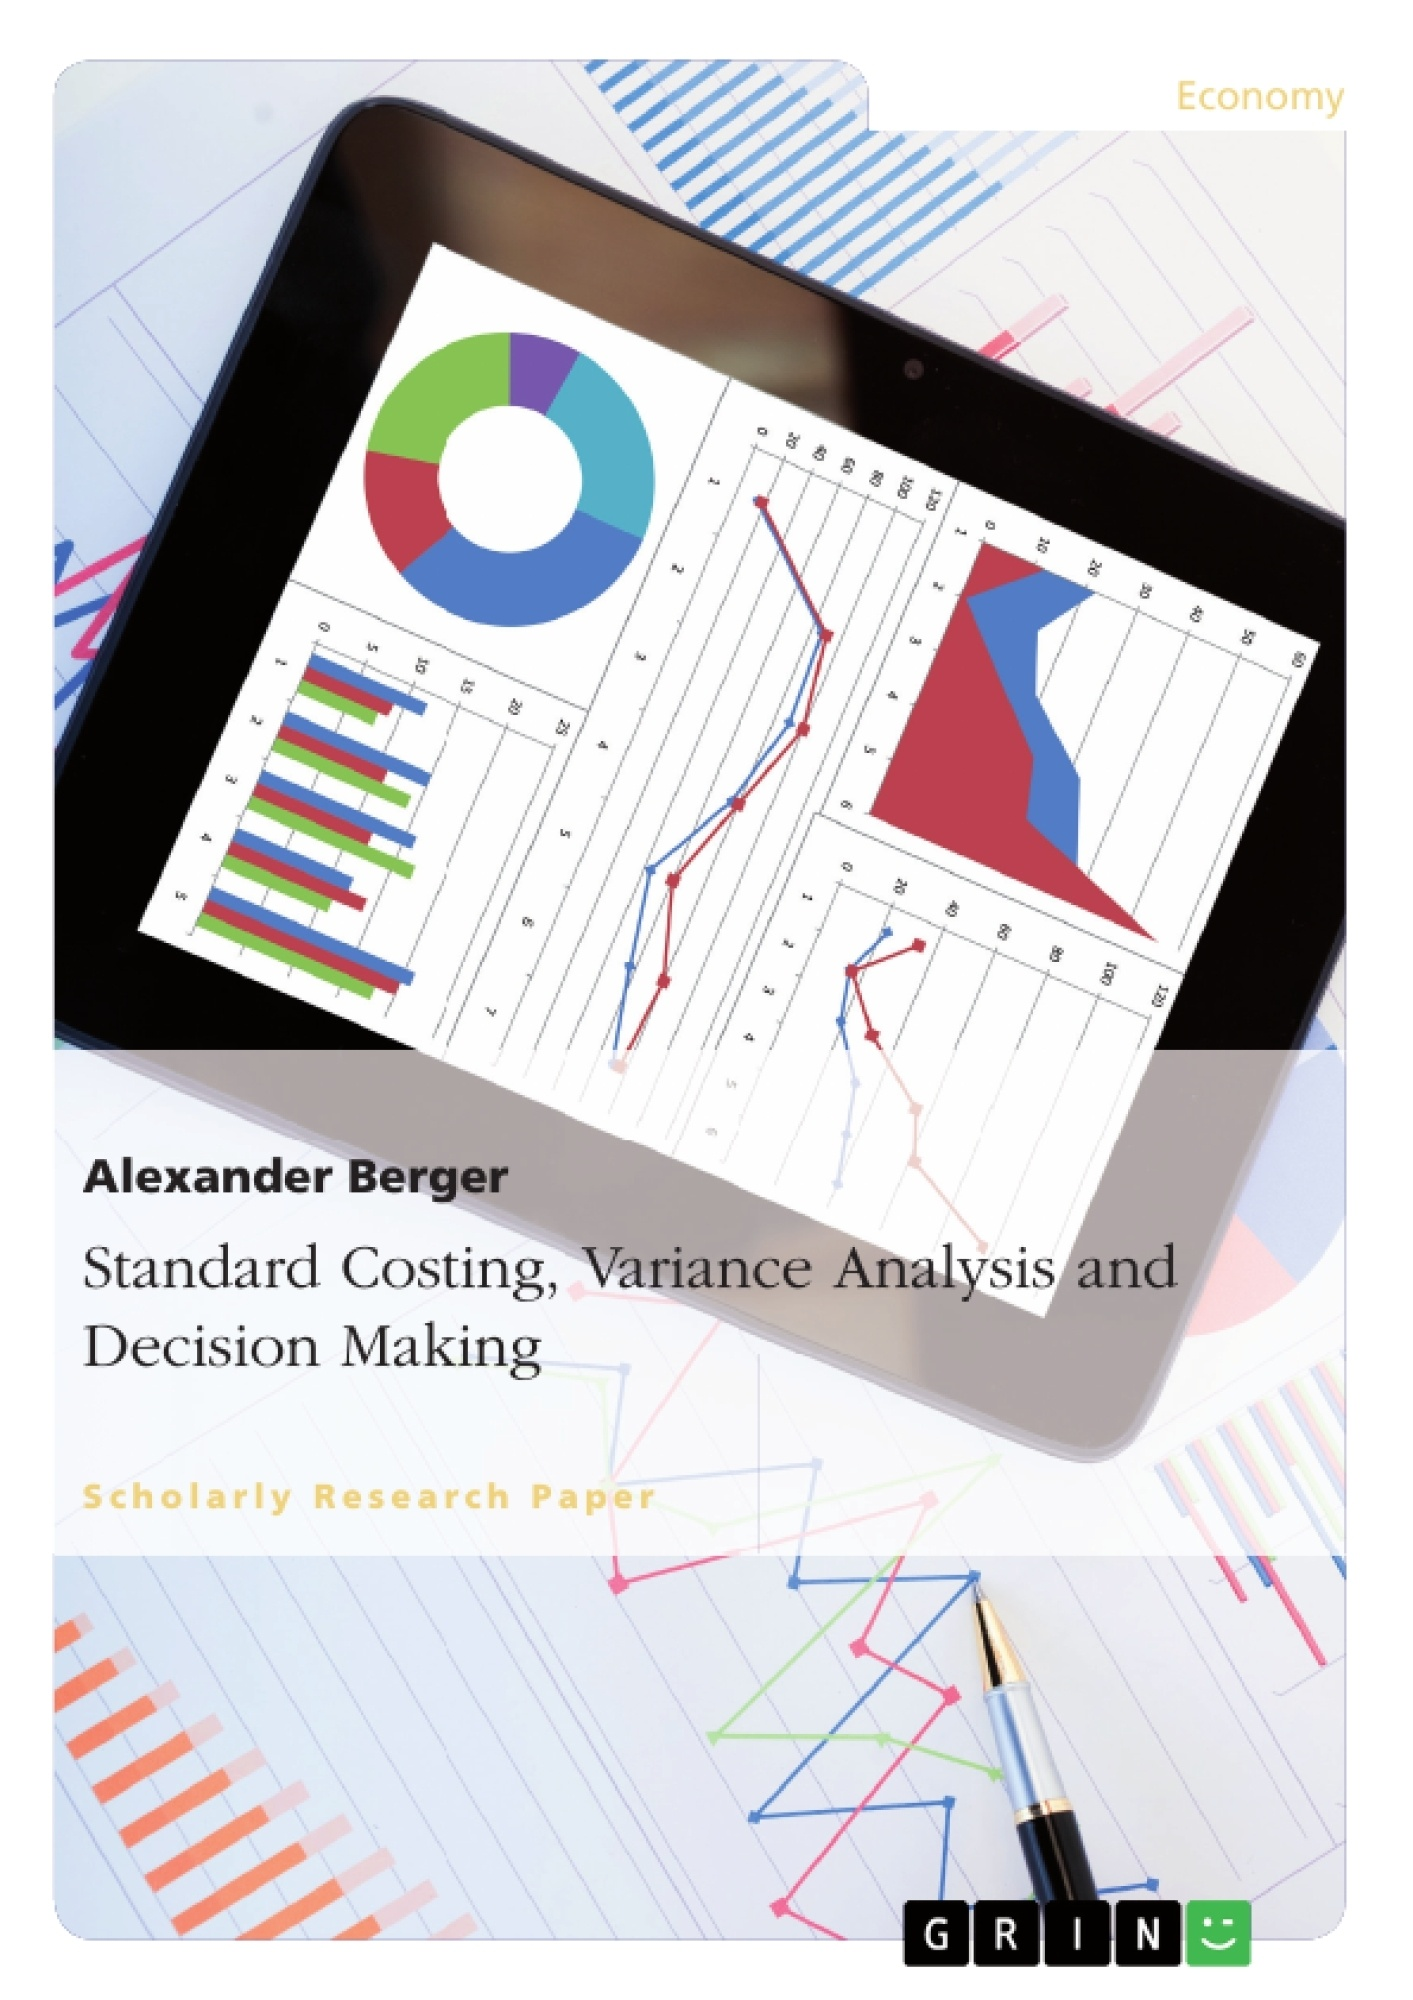 Title: Standard Costing, Variance Analysis and Decision-Making